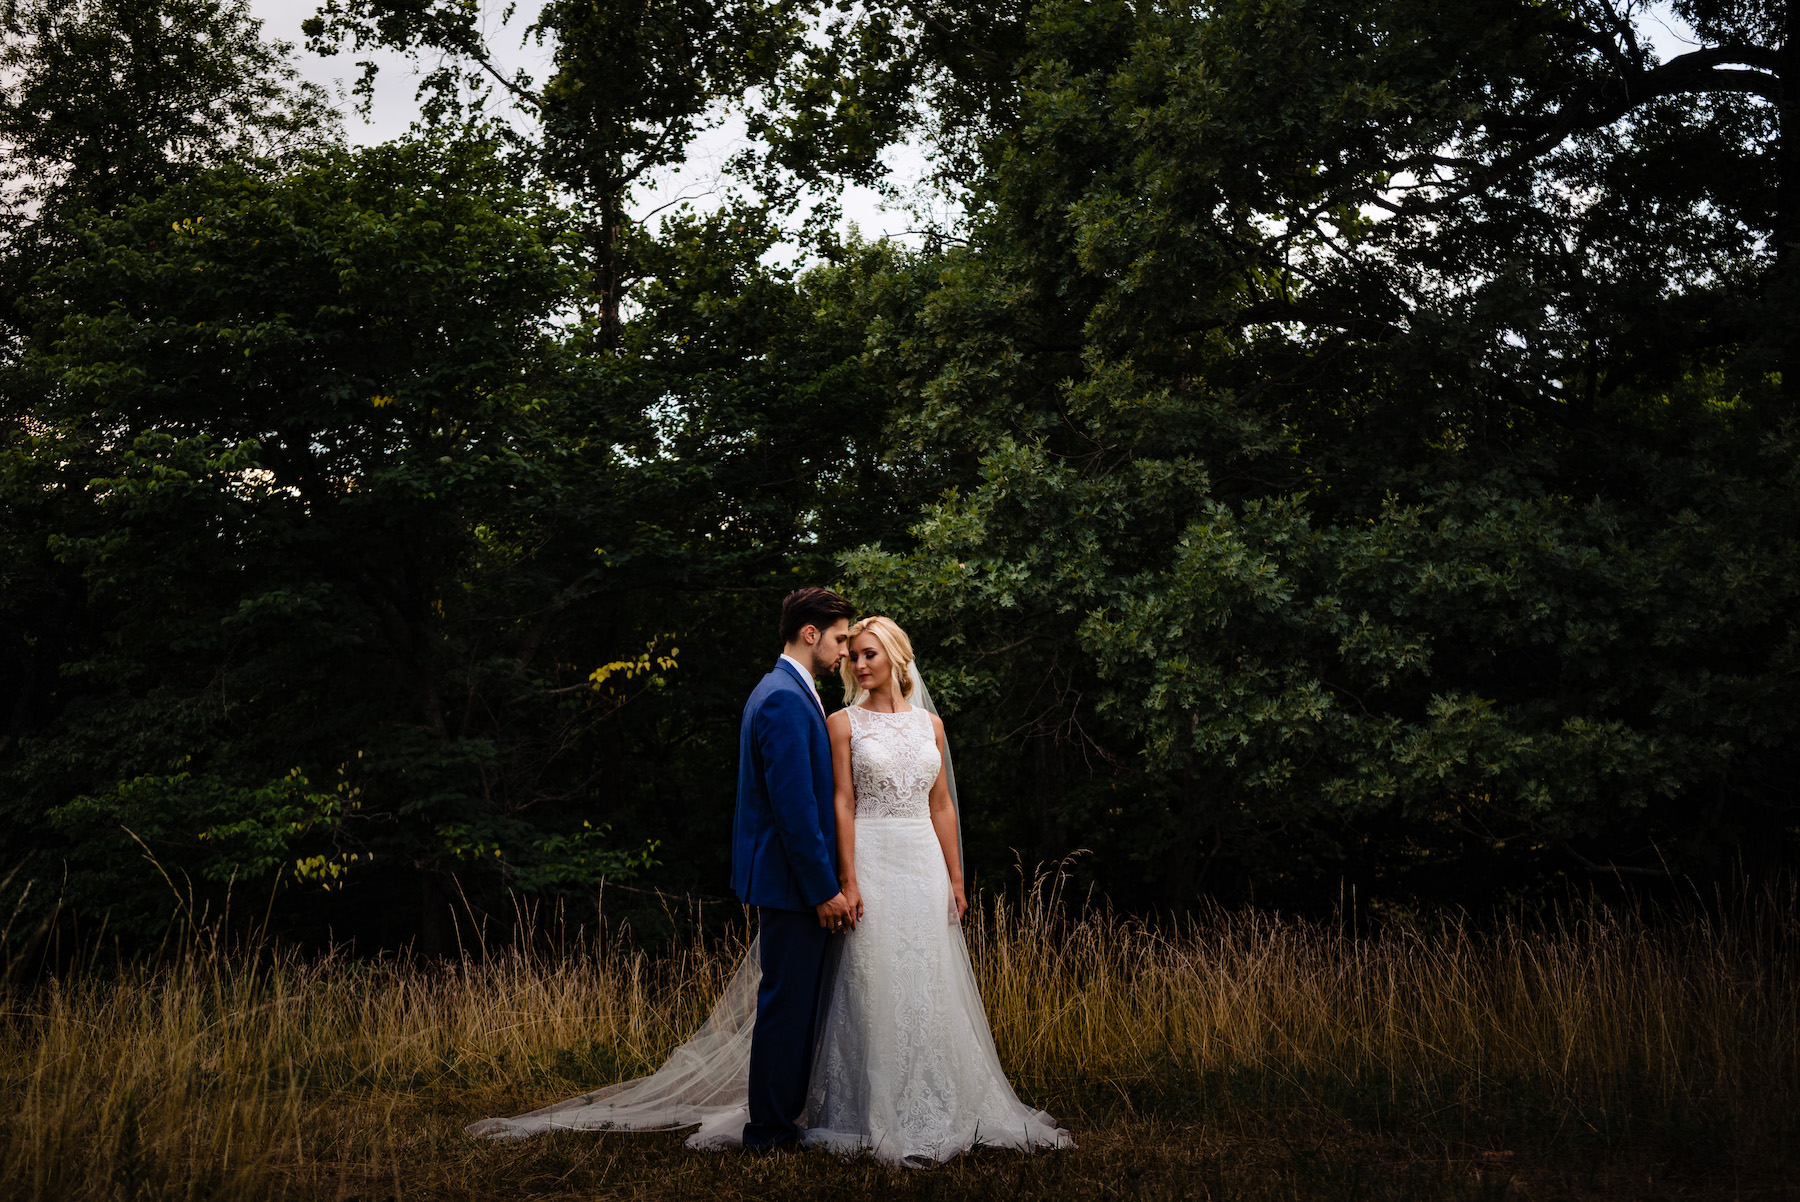 Young Couple. Explore Frequently Asked Questions about Osage House to learn more about the venue.